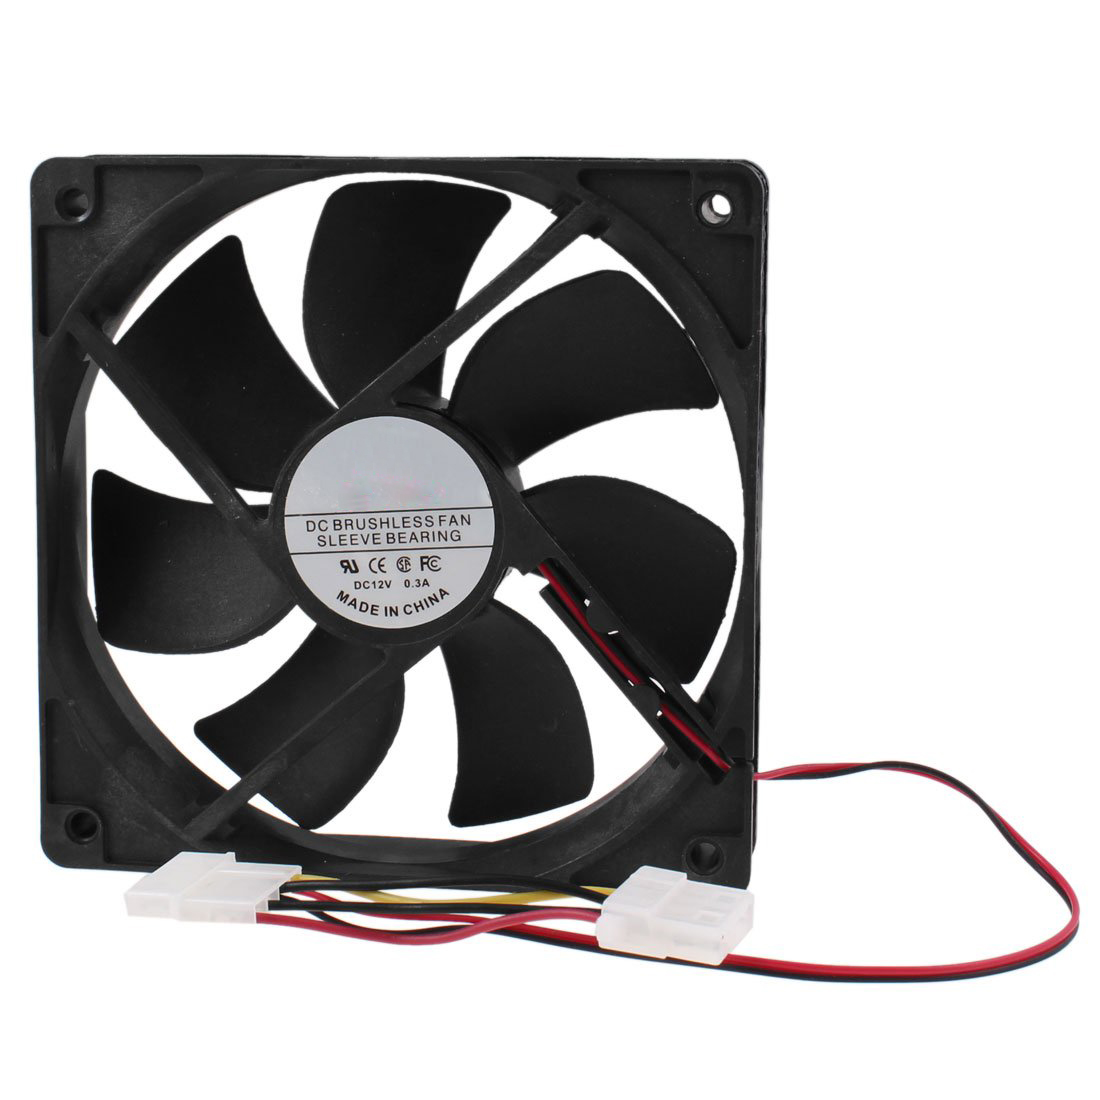 PC Brushless DC Cooling Fan 4 Pin Connector 7 Blades 12V 12cm 120mm